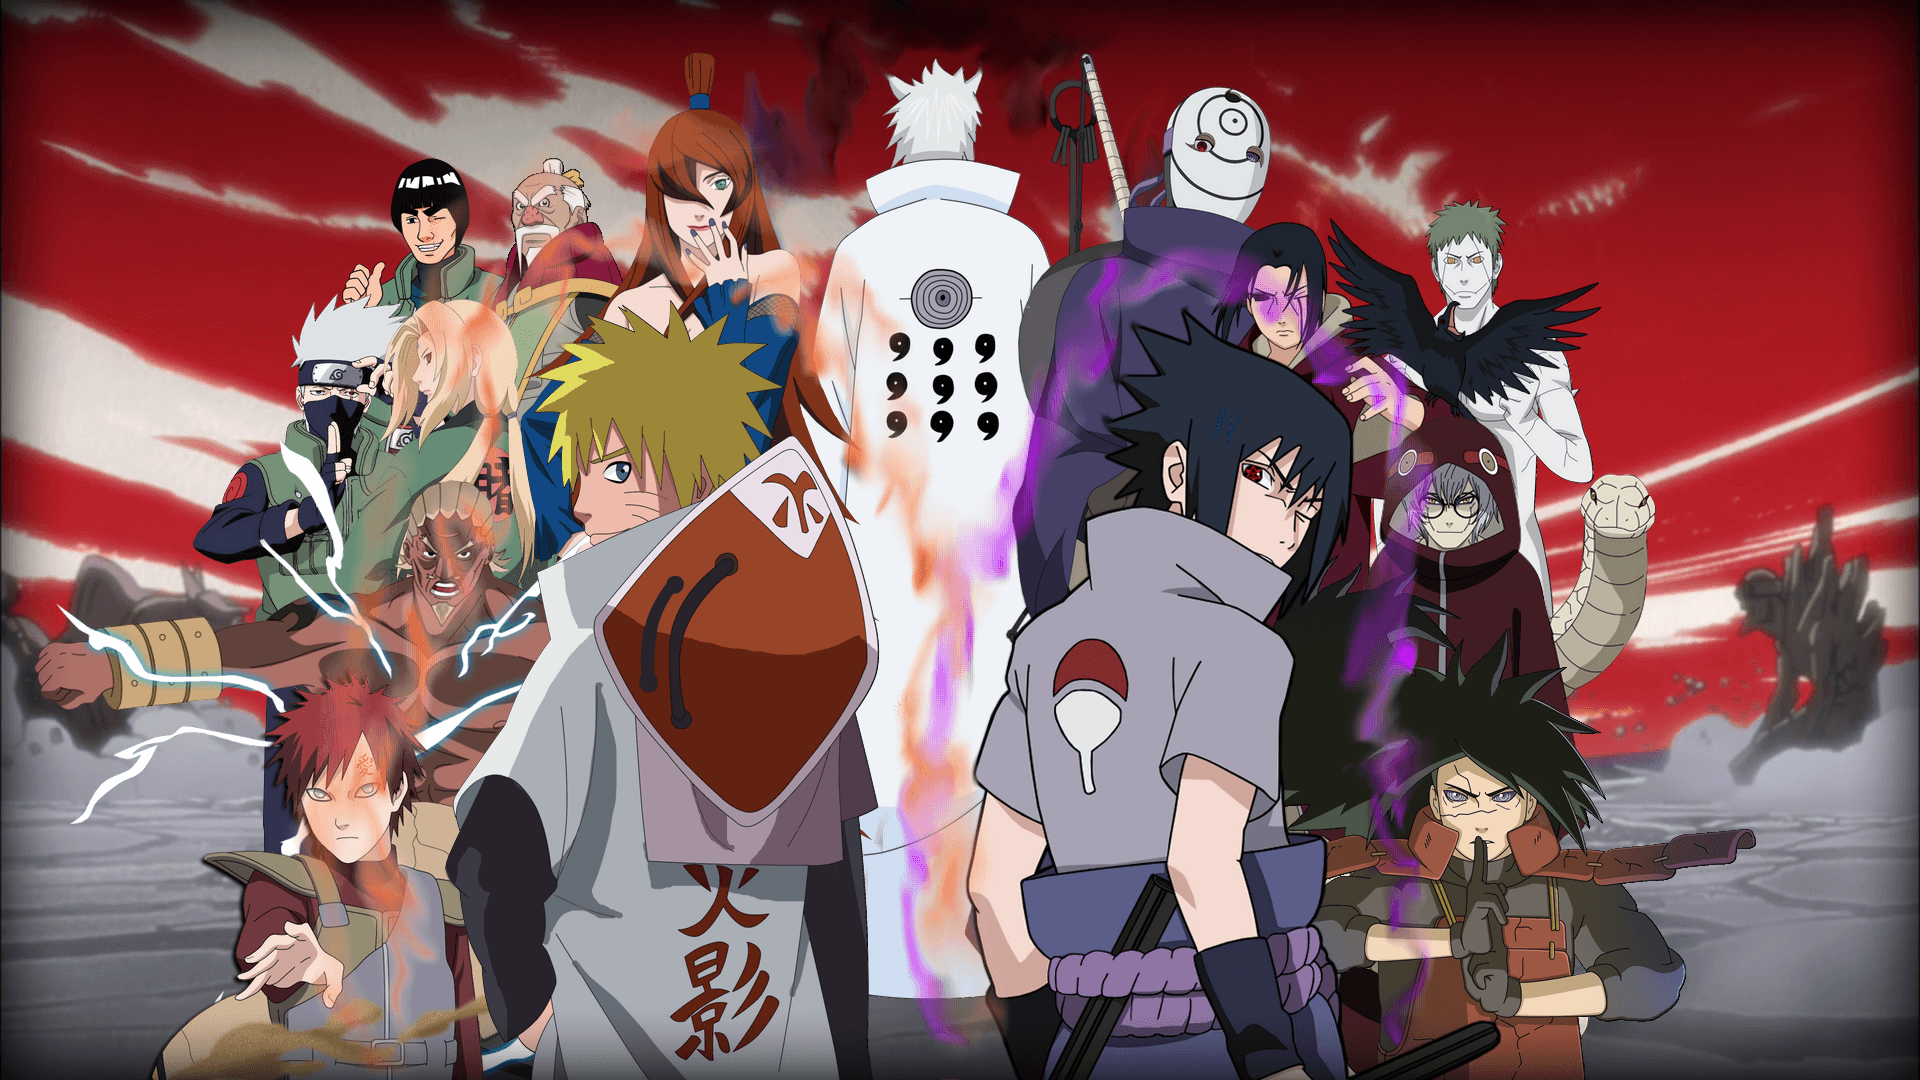 Naruto Shippuden Wallpapers 2016 - Wallpaper Cave